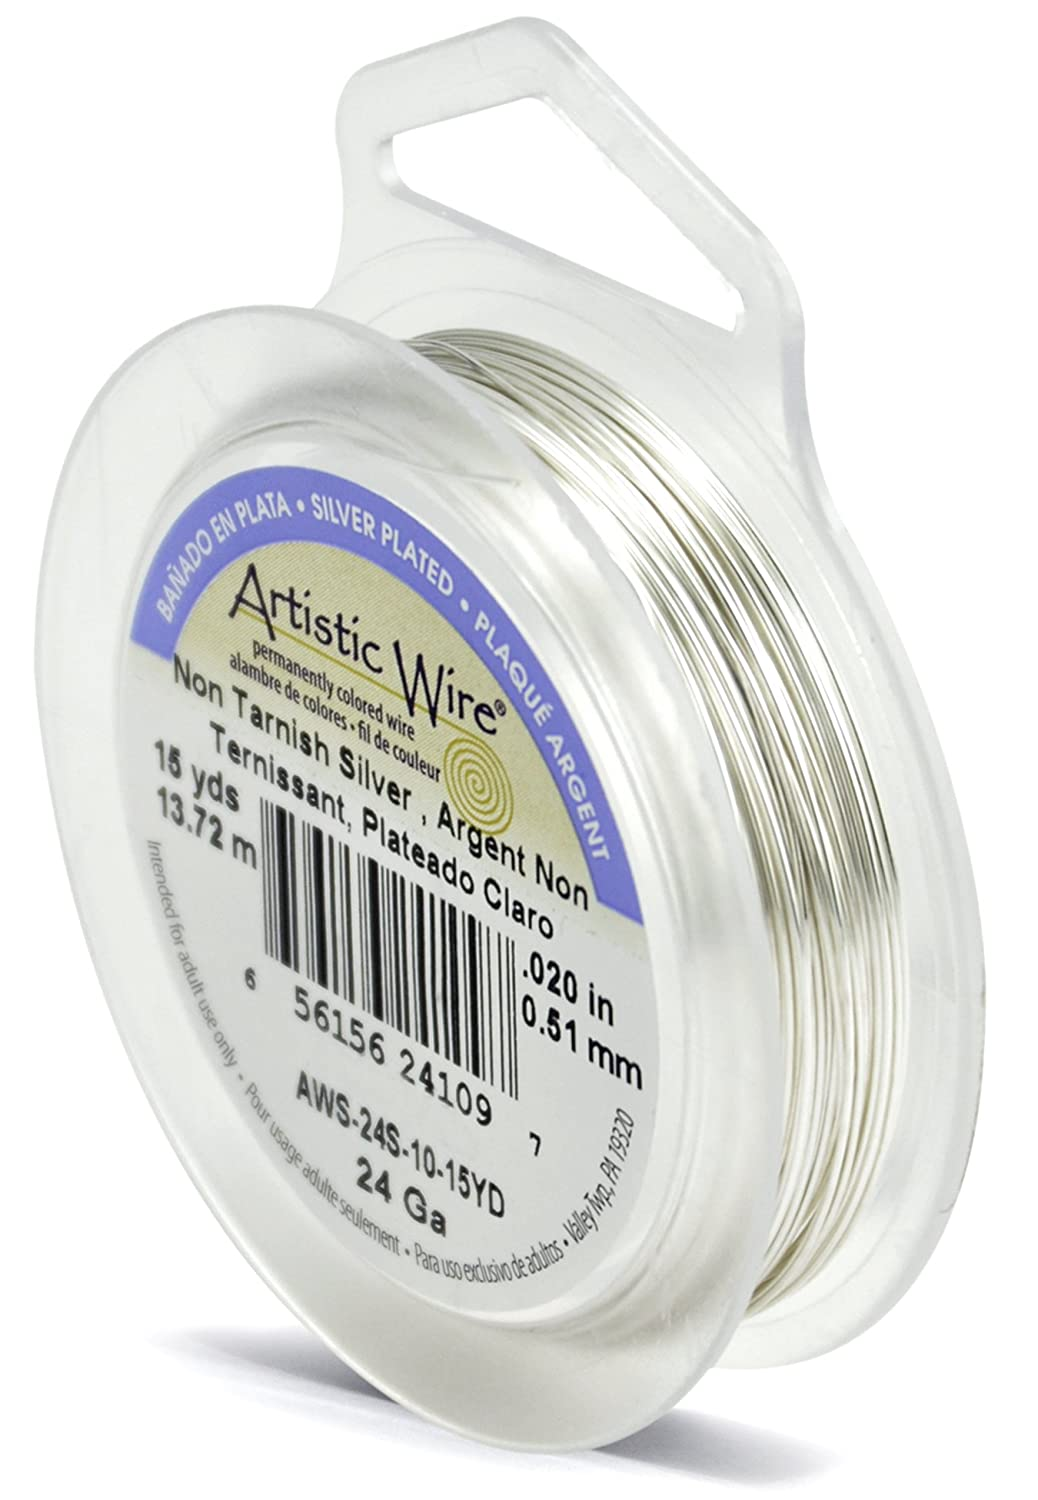 Beadalon 15-Yards Artistic 24-Gauge Tarnish Resistant Wire, Silver AWS-24S-10-15YD